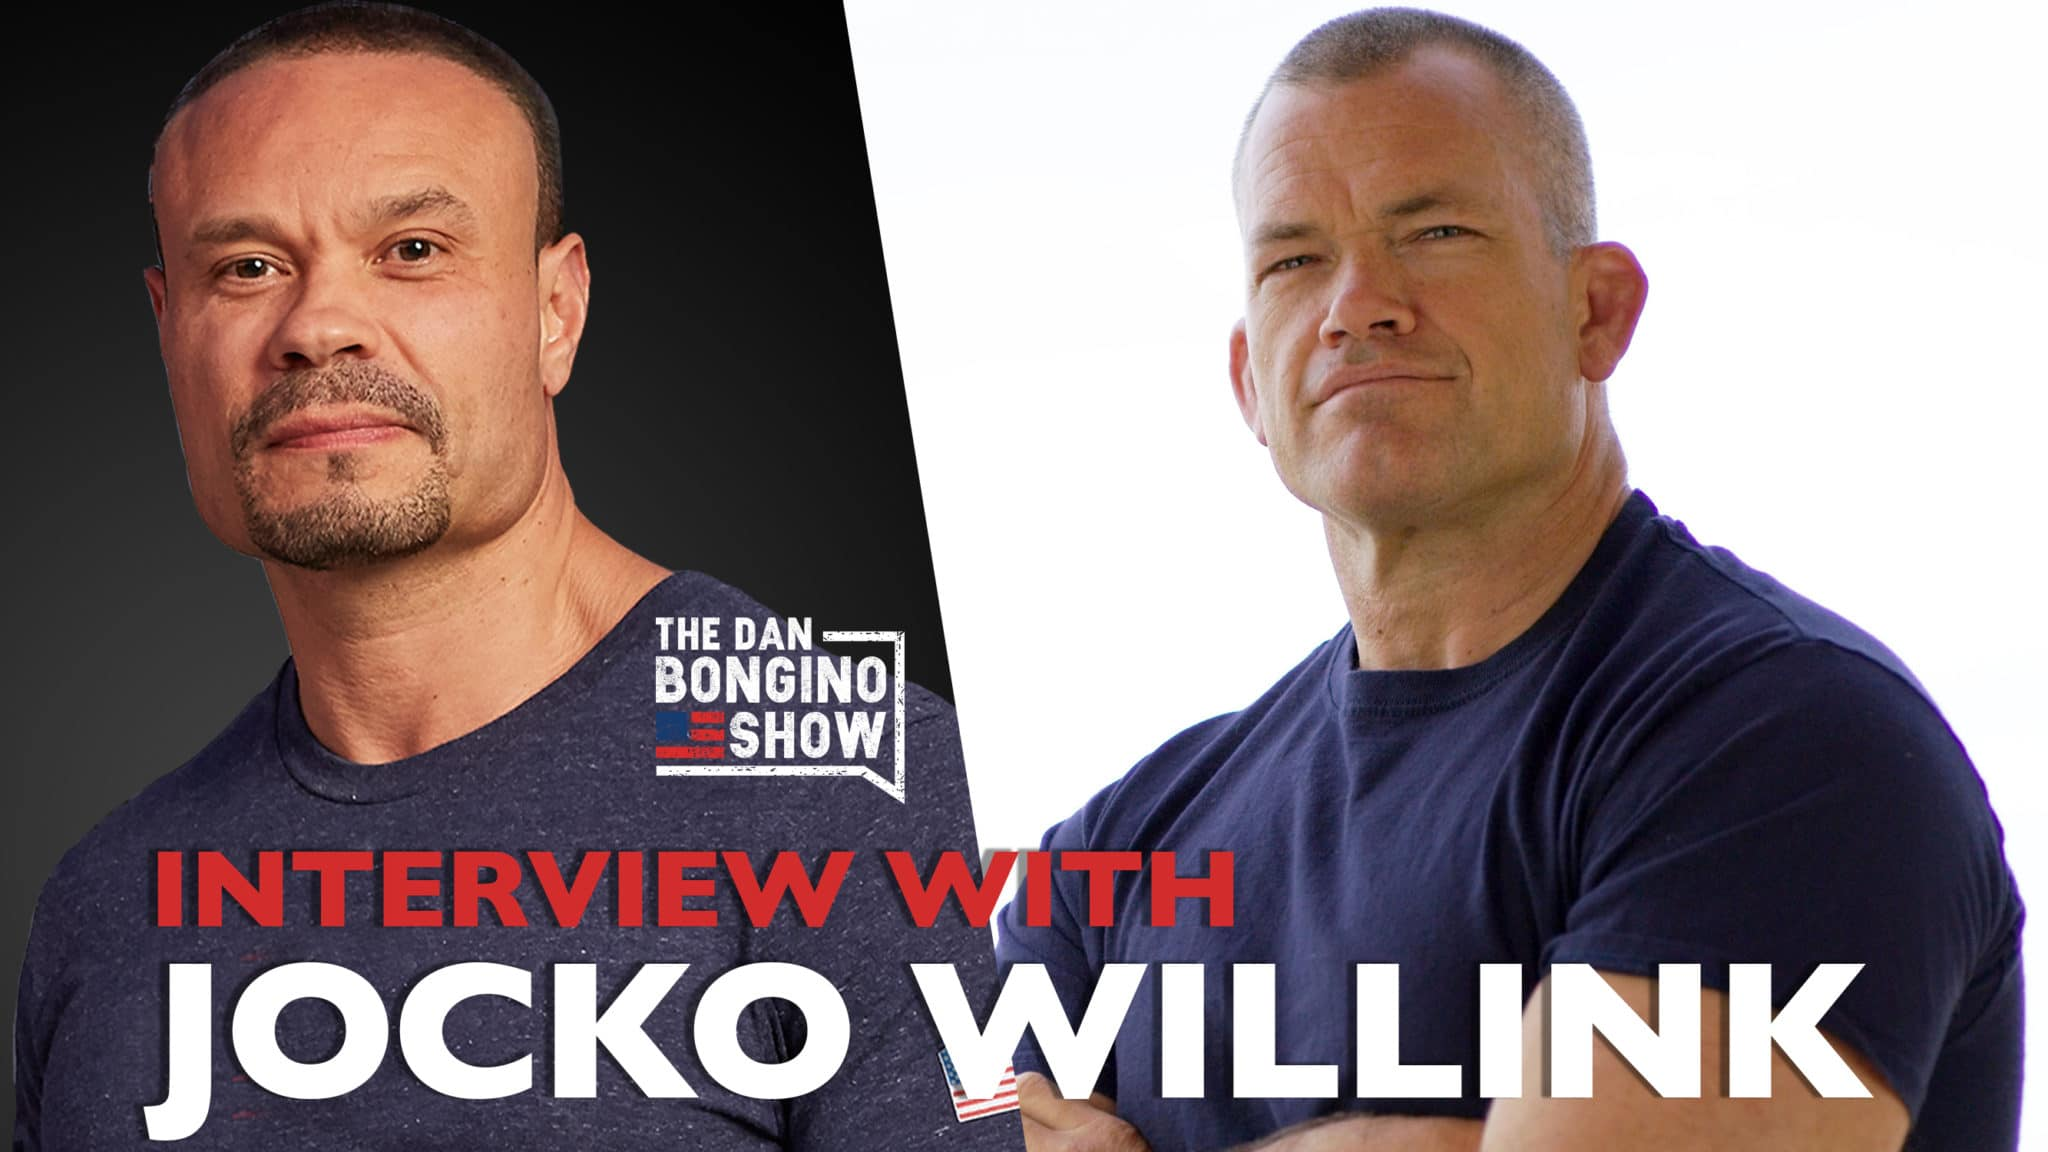 EP 1187 Interview With Jocko Willink